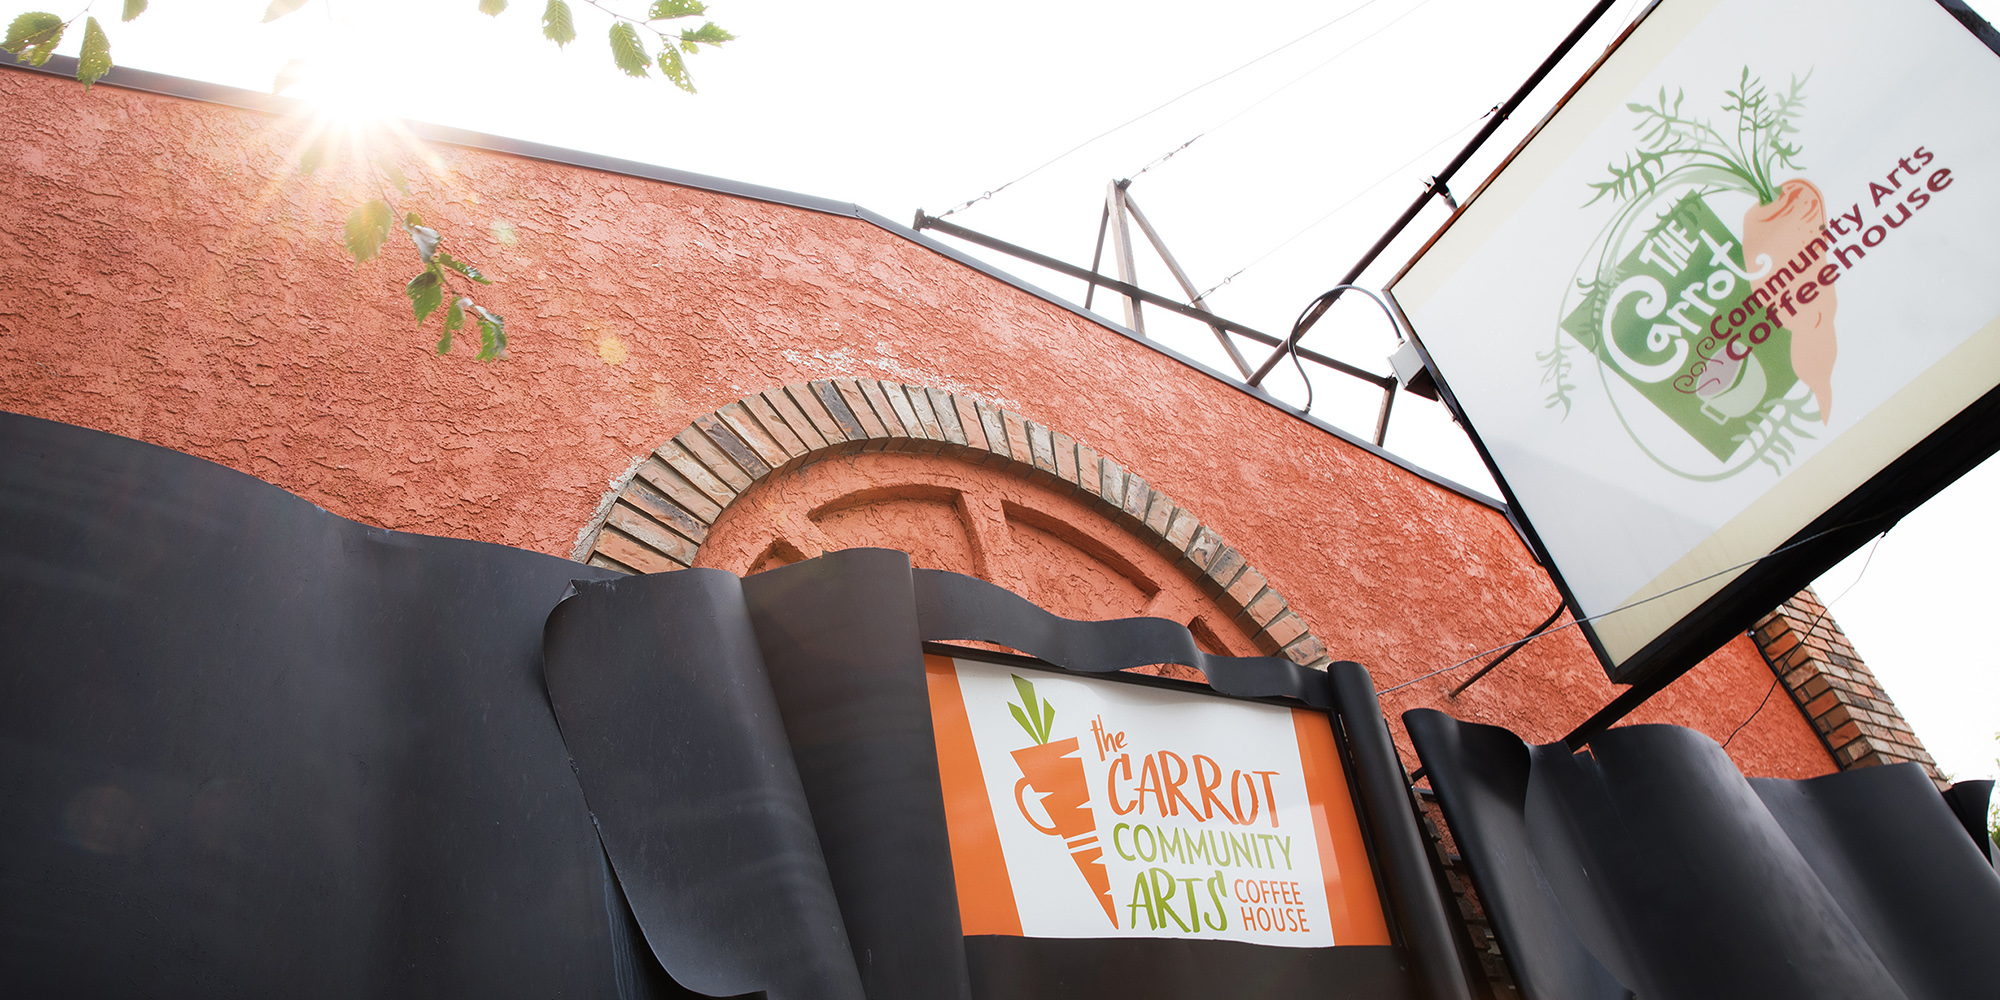 carrot community arts coffeehouse, edmonton, alberta avenue, 118 avenue